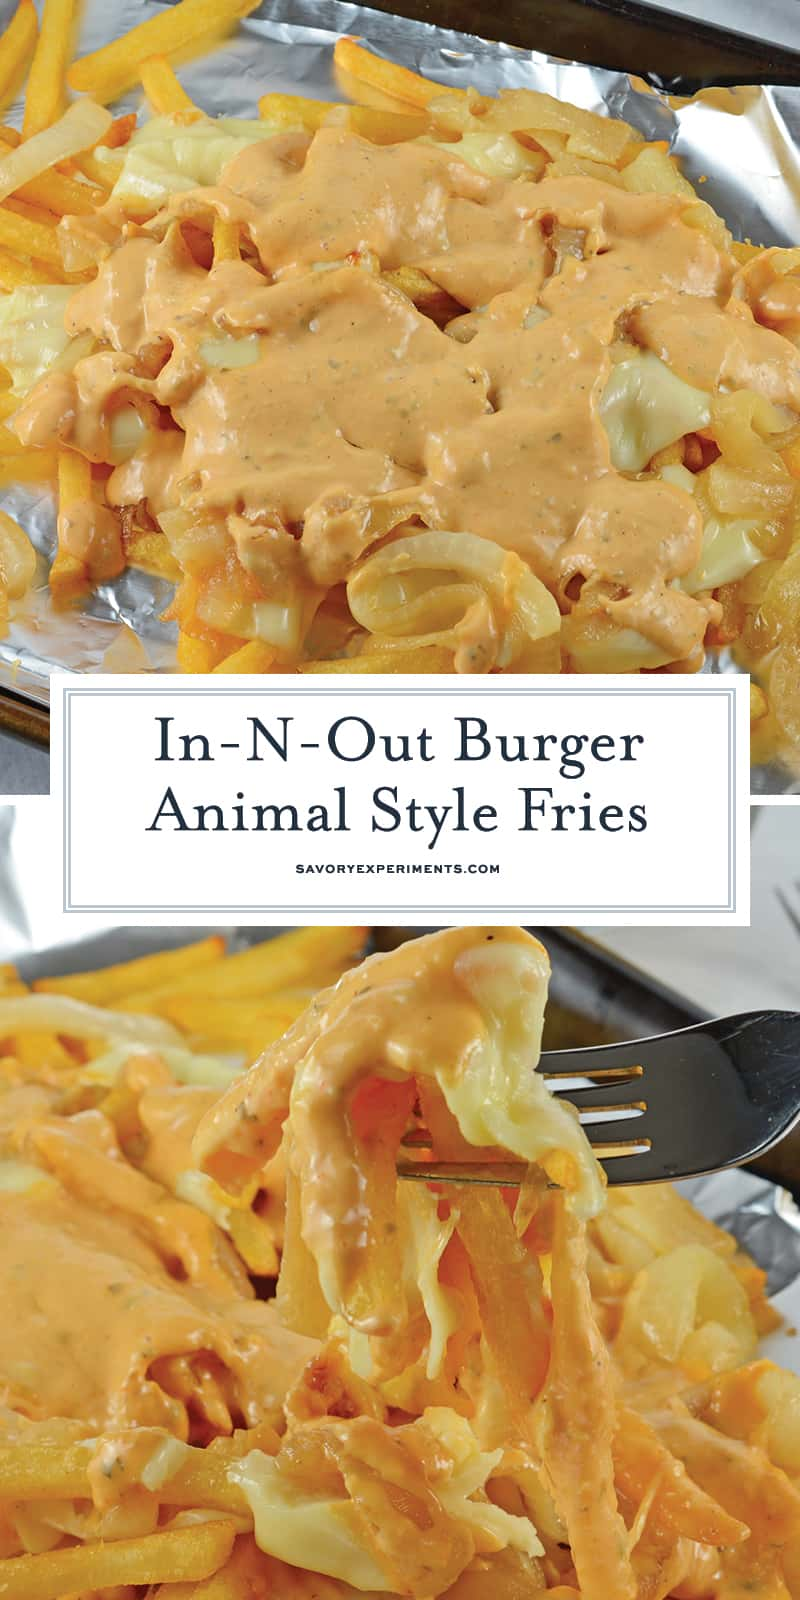 Now you can enjoy Copycat In-N-Out Burger Animal Style Fries at home! Using a simple fry sauce, crispy fries, American cheese and fried onions. #animalstylefries #animalfries www.savoryexperiments.com